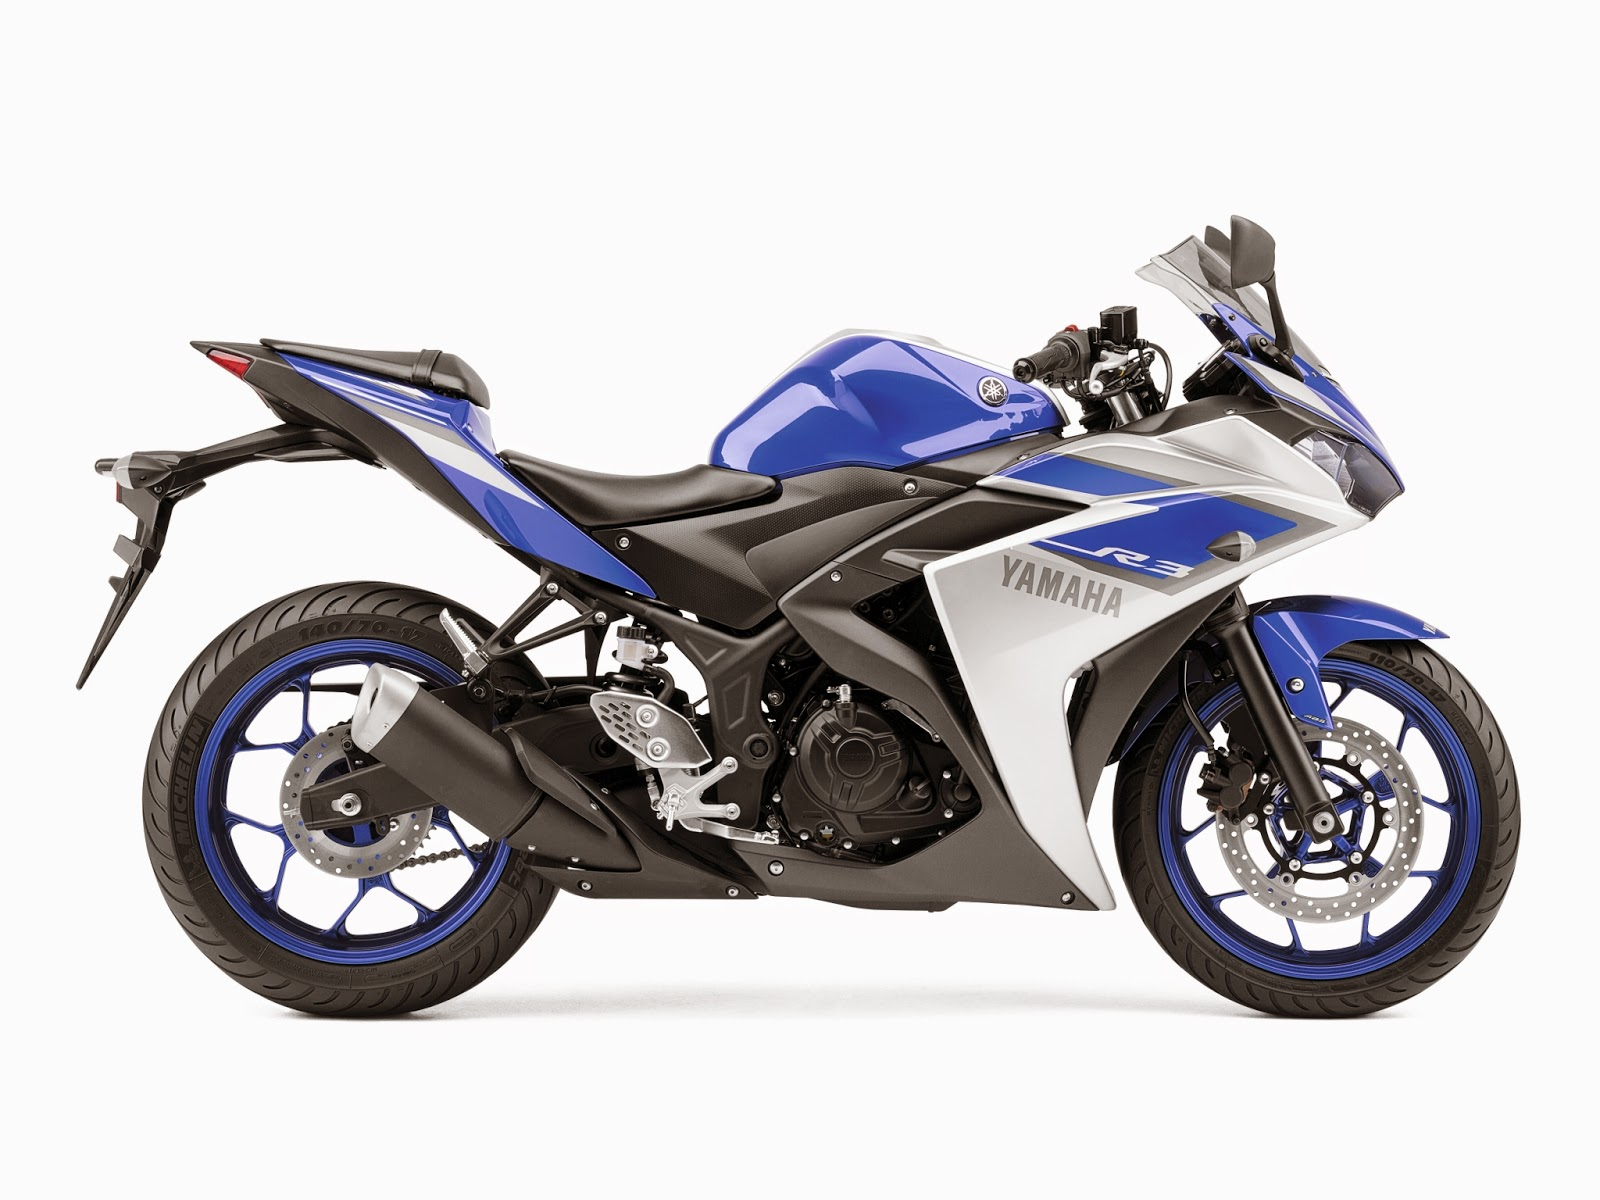 Unfortunately this version may not be marketed in malaysia almost of 2 years we waited for yamaha r25 and sure yamaha will not squander their fans